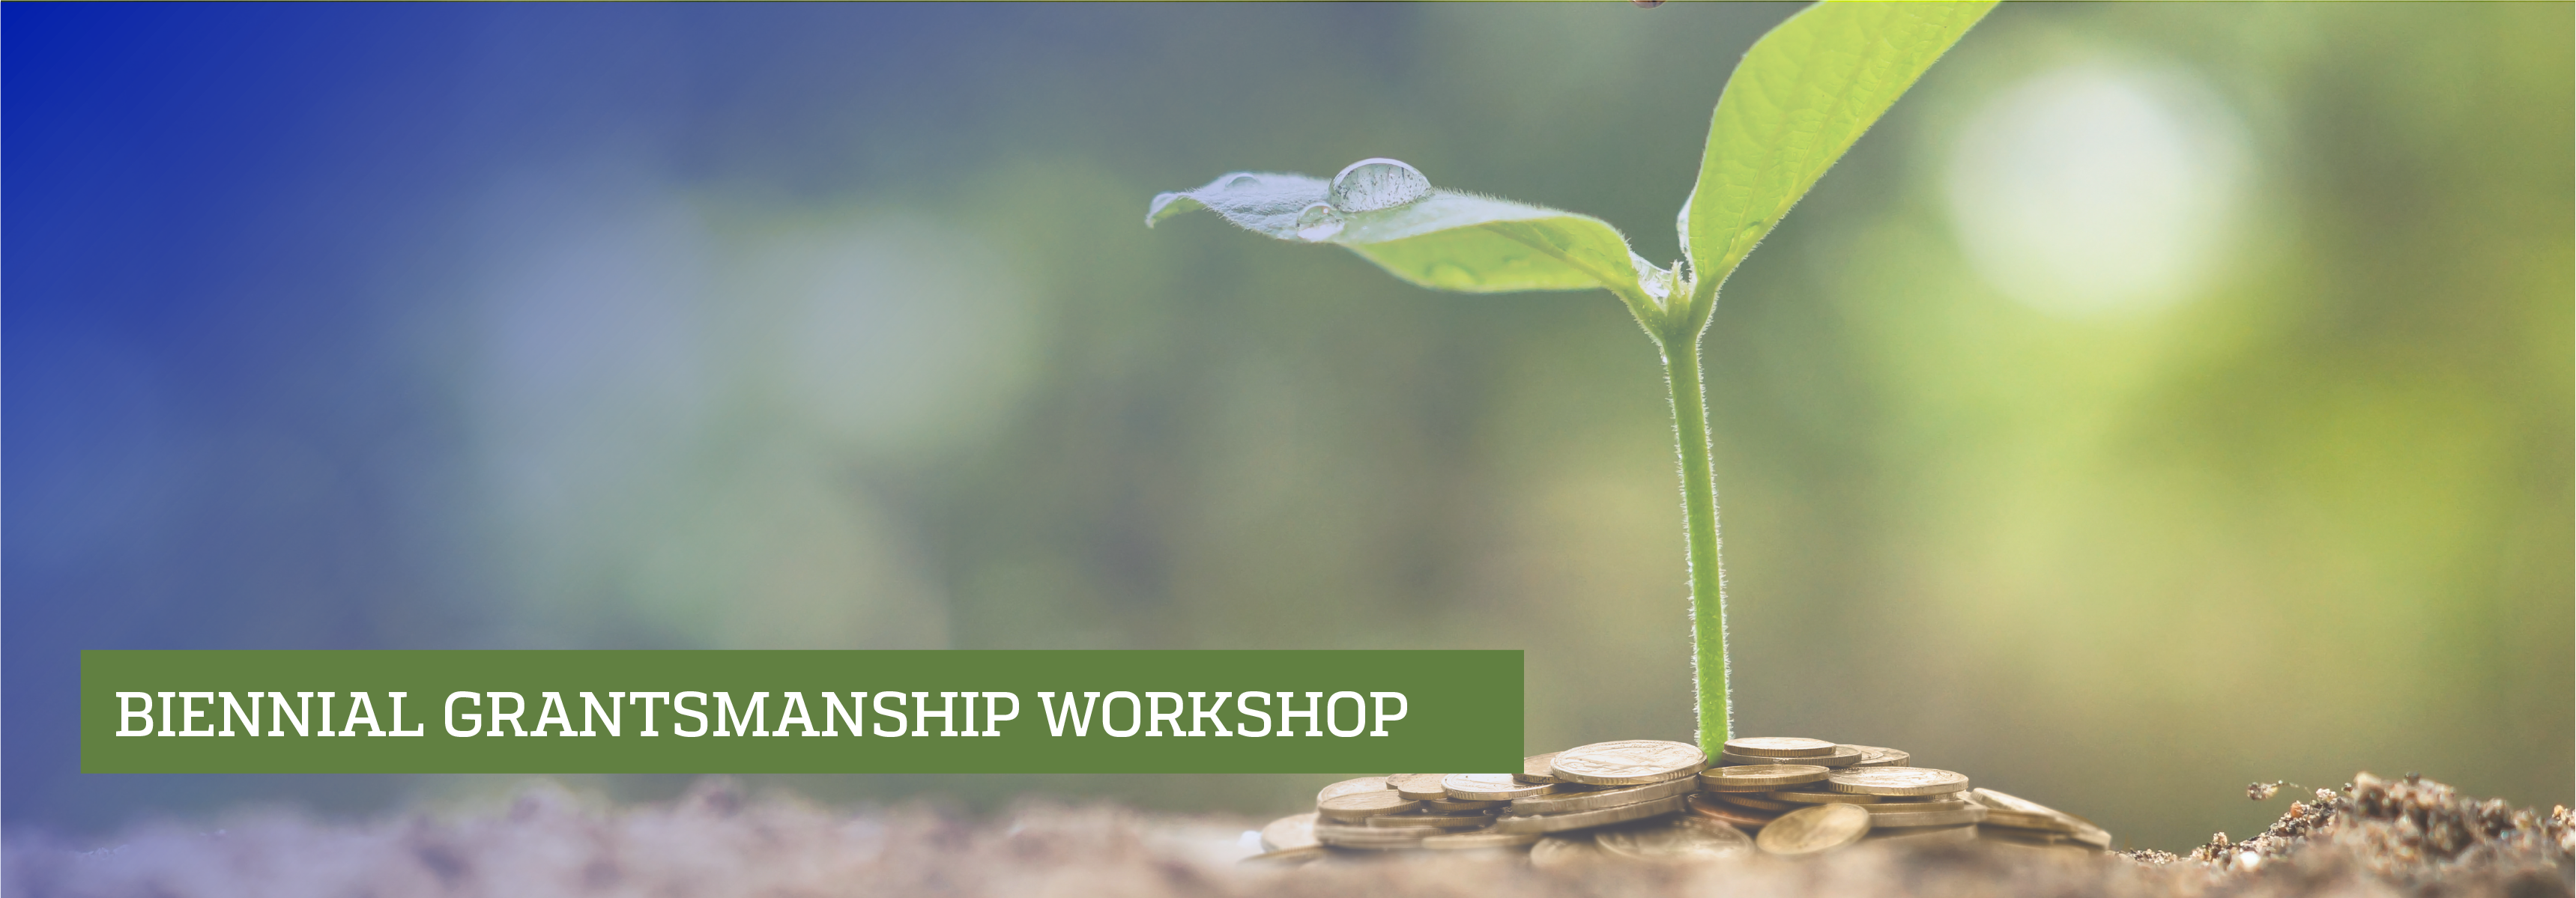 Plant growing from pile of coins; Bi-Annual Grantsmanship Workshop